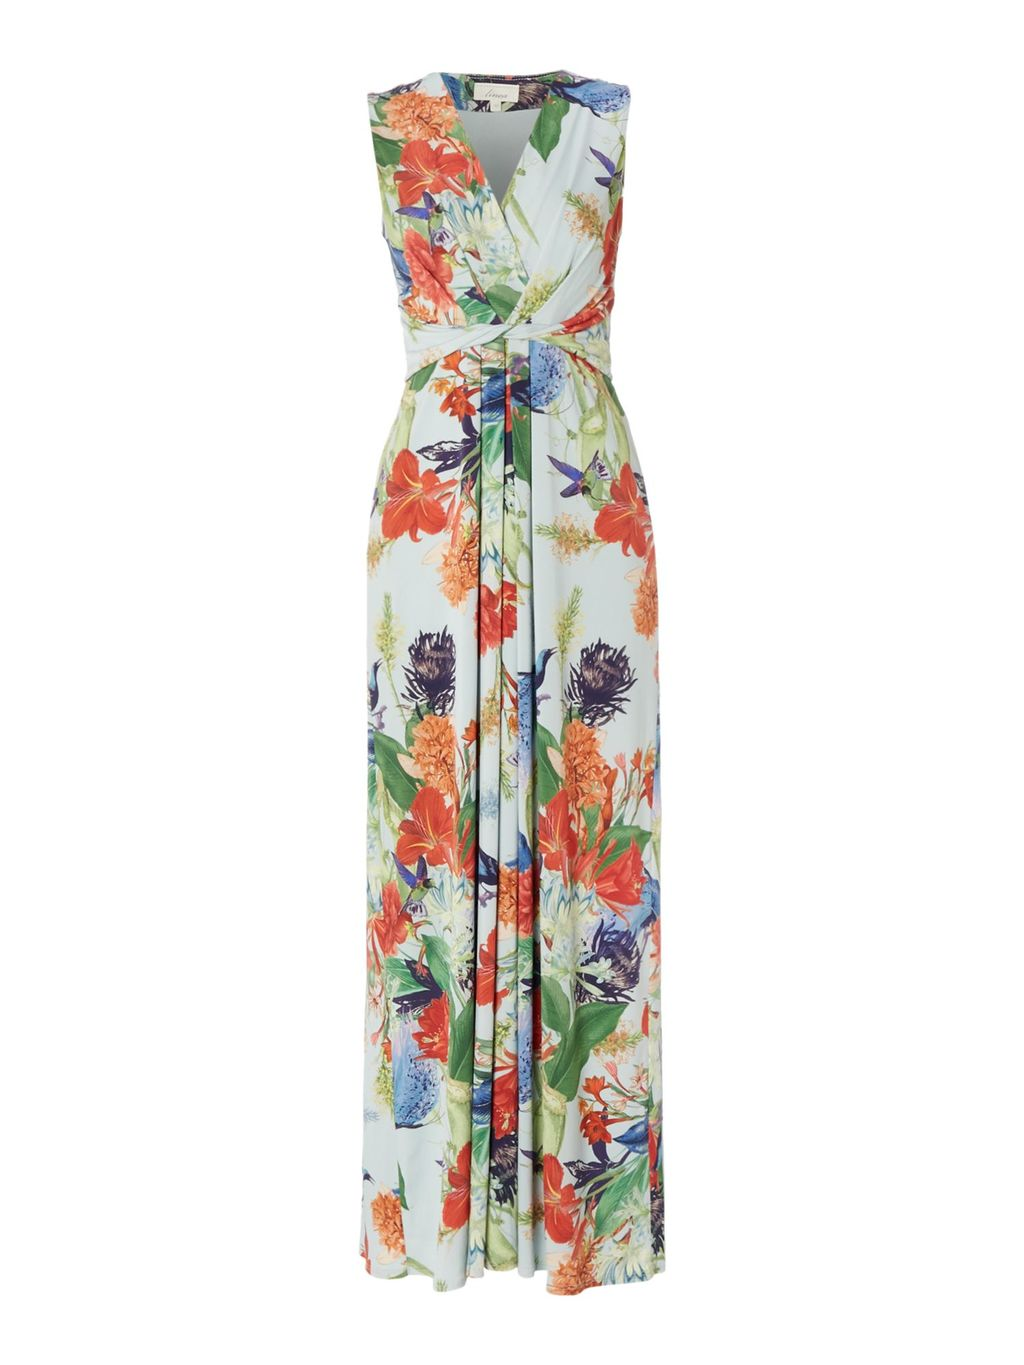 Chinoiserie Print Maxi Dress, Multi Coloured - neckline: v-neck; sleeve style: sleeveless; style: maxi dress; predominant colour: white; secondary colour: bright orange; occasions: evening; length: floor length; fit: body skimming; fibres: polyester/polyamide - stretch; sleeve length: sleeveless; pattern type: fabric; pattern: florals; texture group: jersey - stretchy/drapey; multicoloured: multicoloured; season: s/s 2016; wardrobe: event